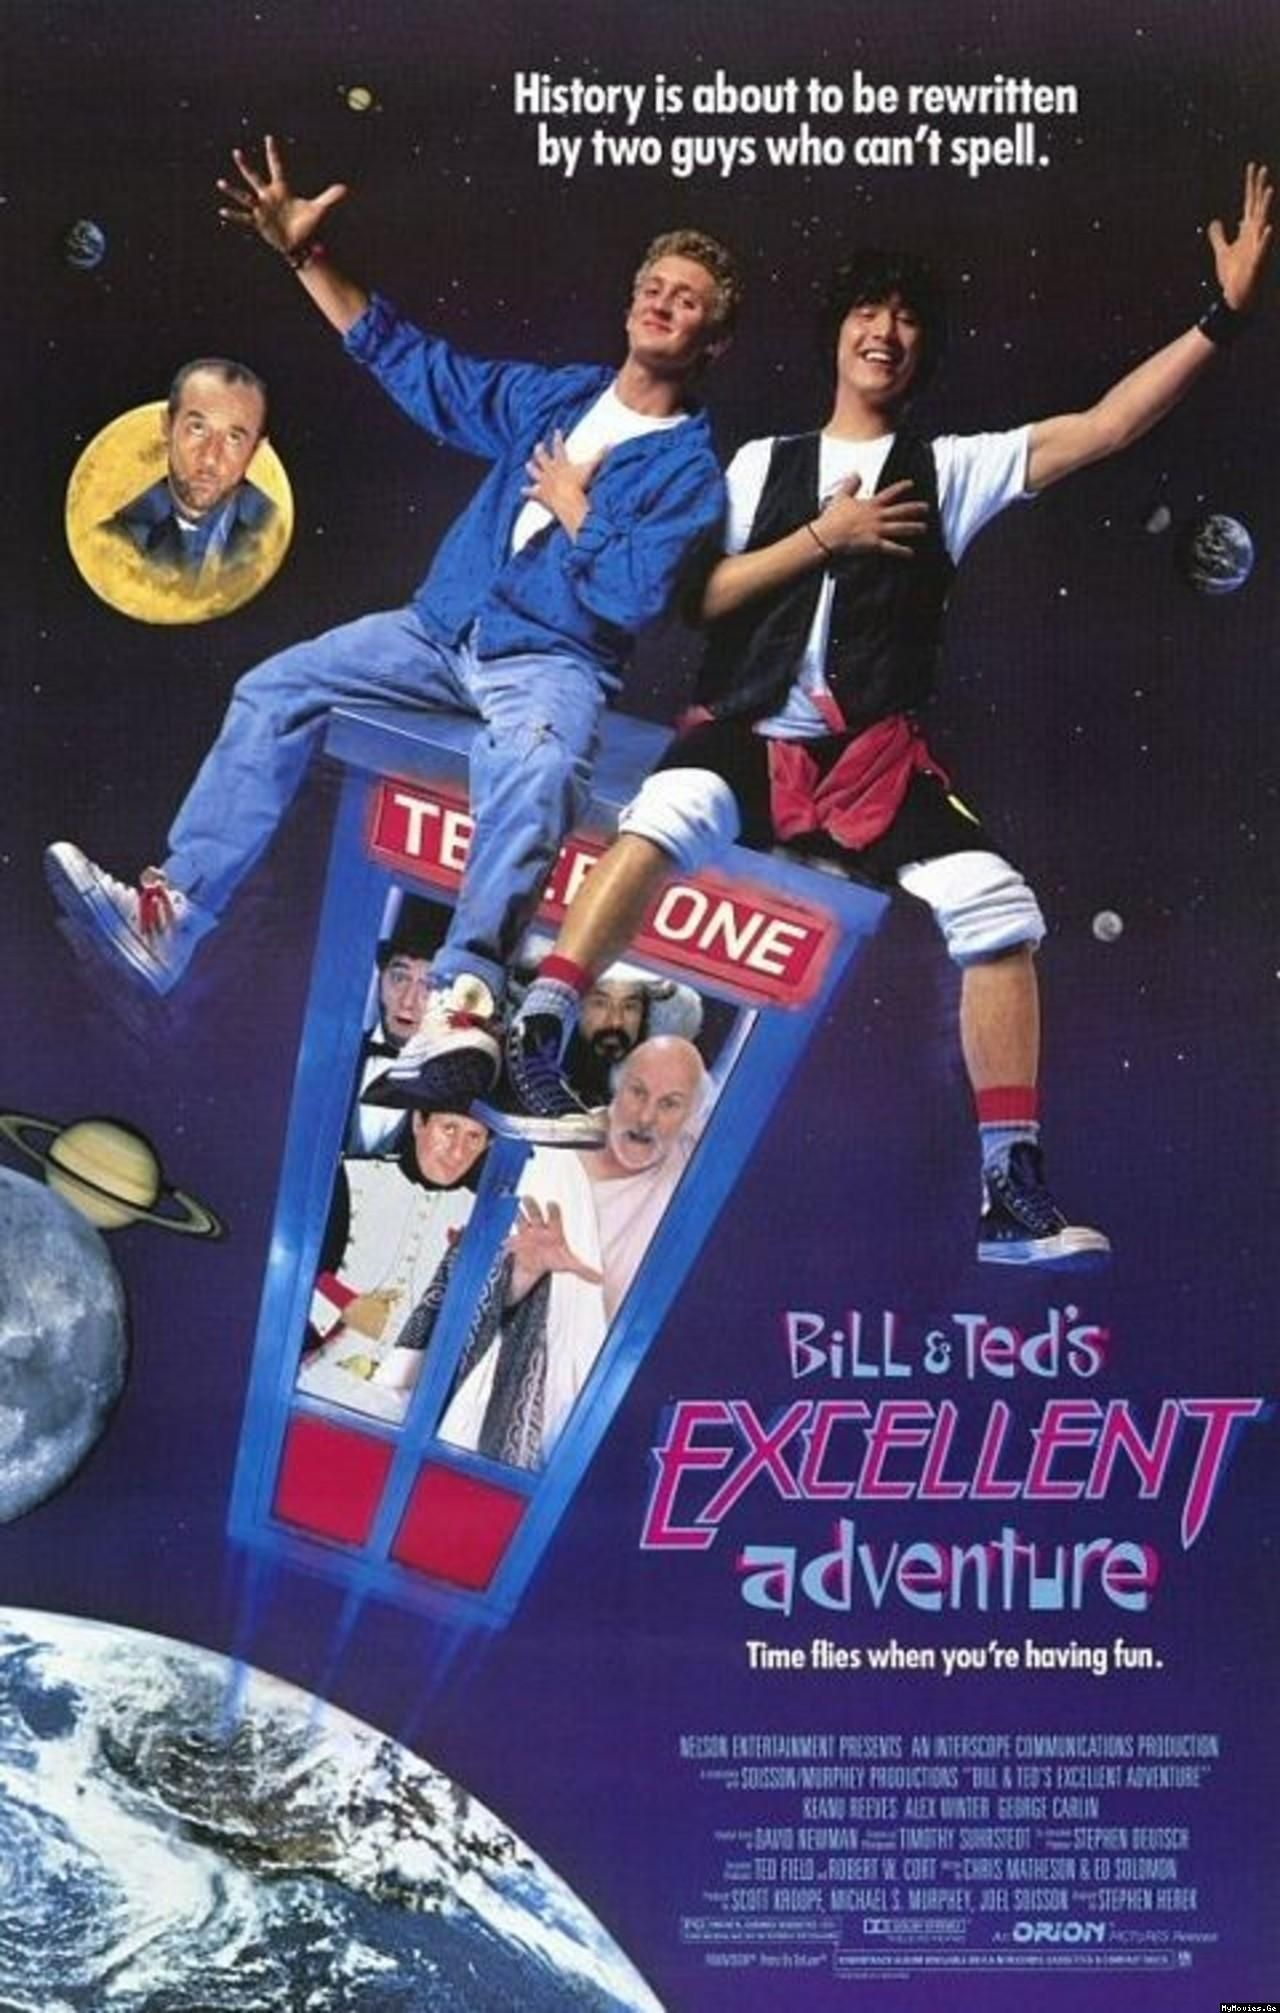 Bill & Teds Excellent Adventure poster